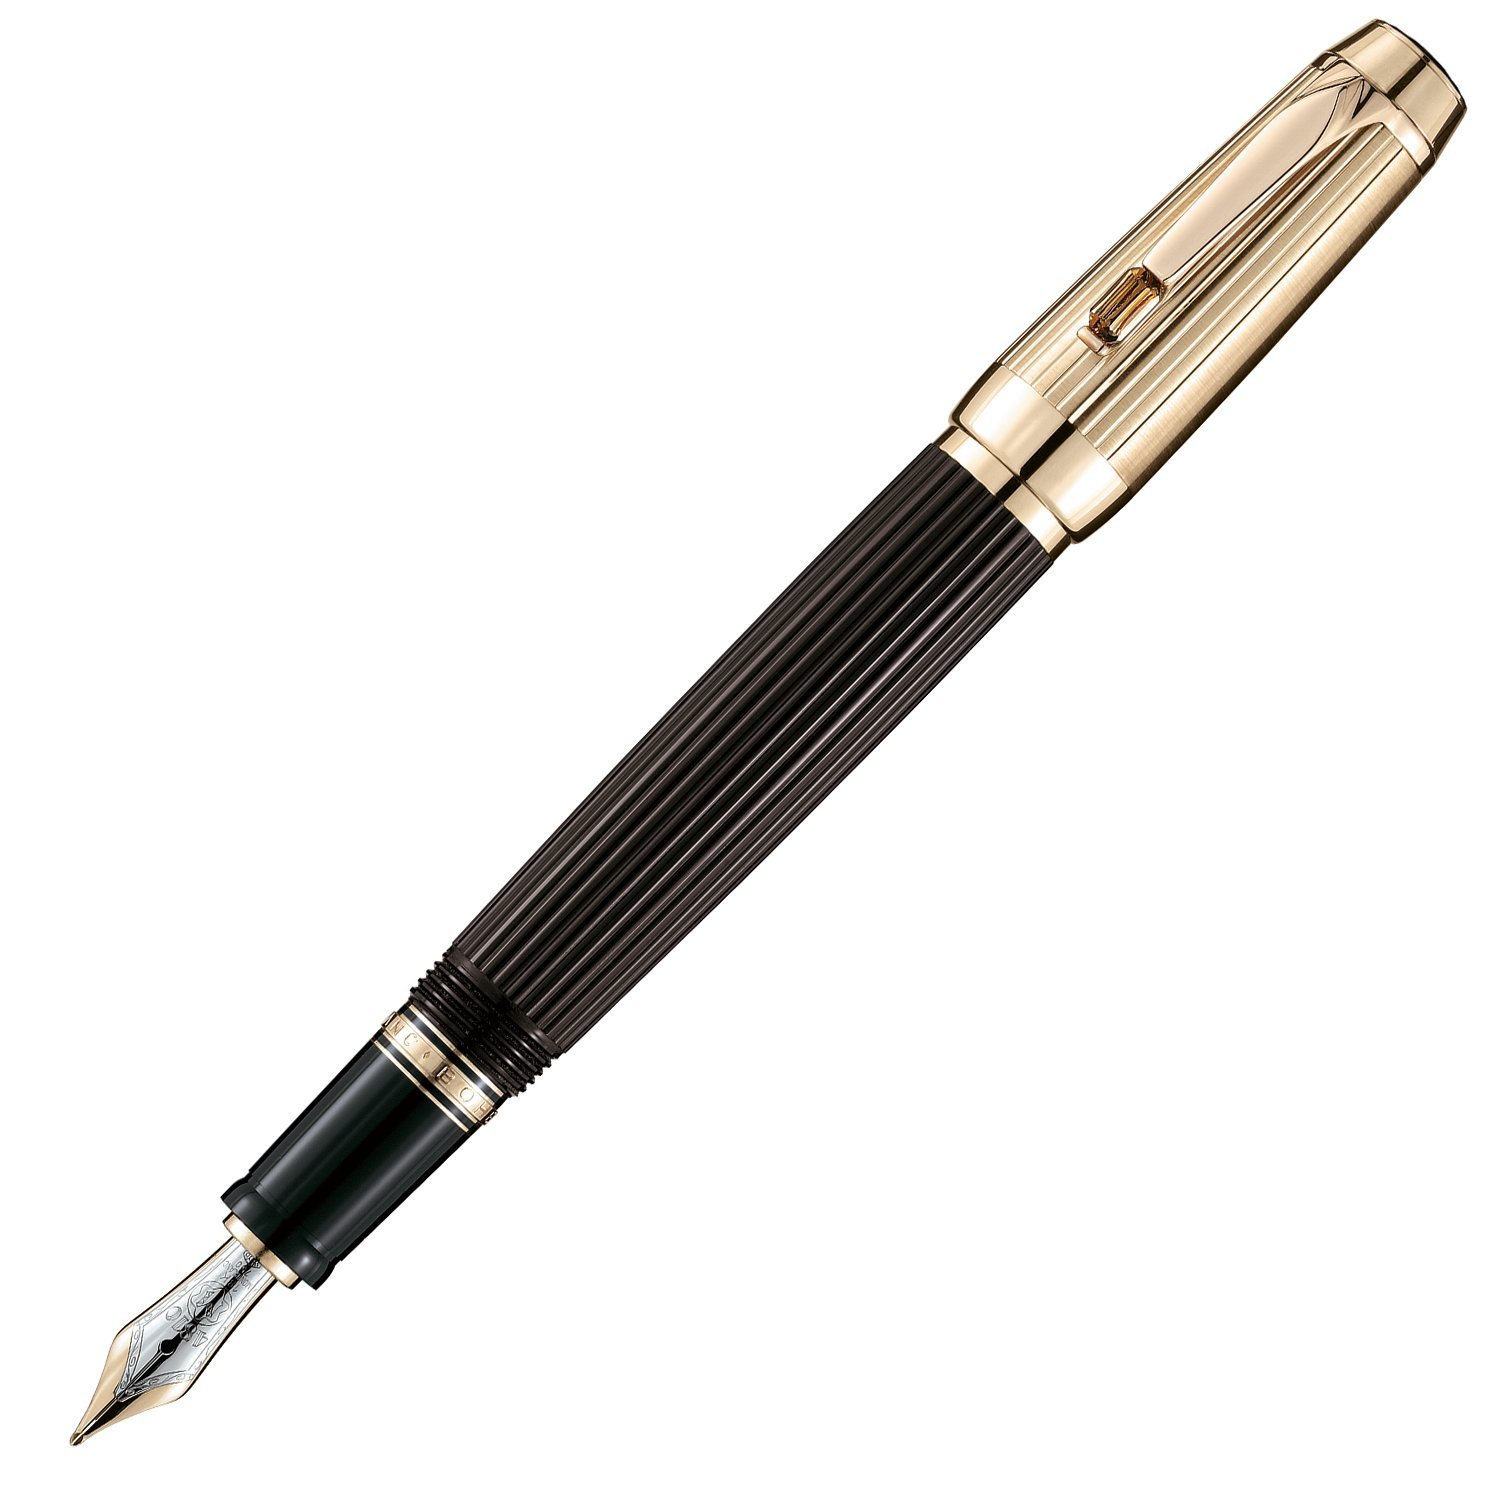 Montblanc Boheme Doue Ligne Fountain Pen with Synthetic Citrine Stone, 18k Retractable Nib 25538, 101994